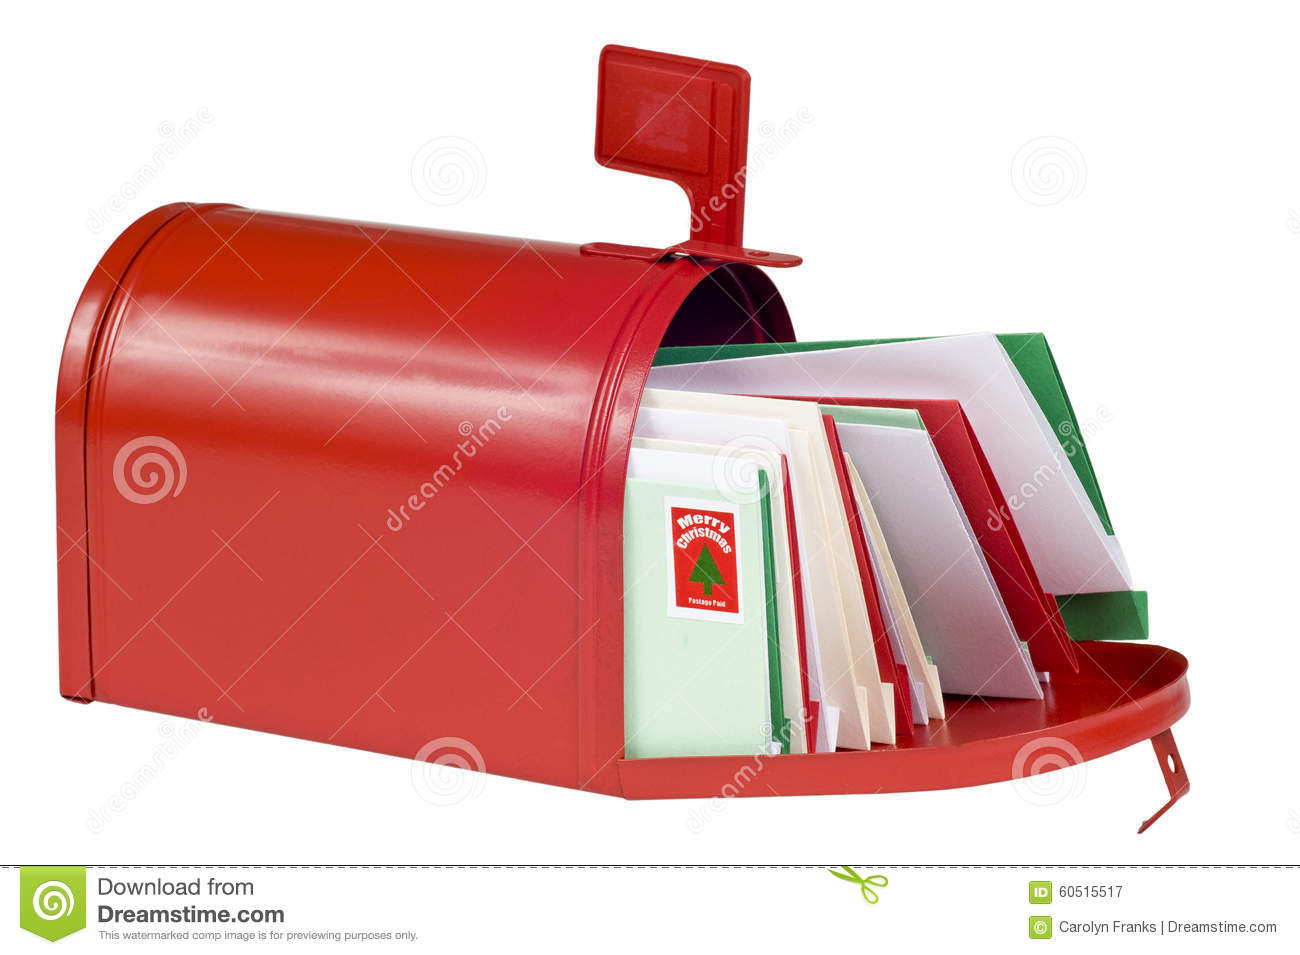 Blank Mail Box Filled With Christmas Cards Stock Image - Image of ...